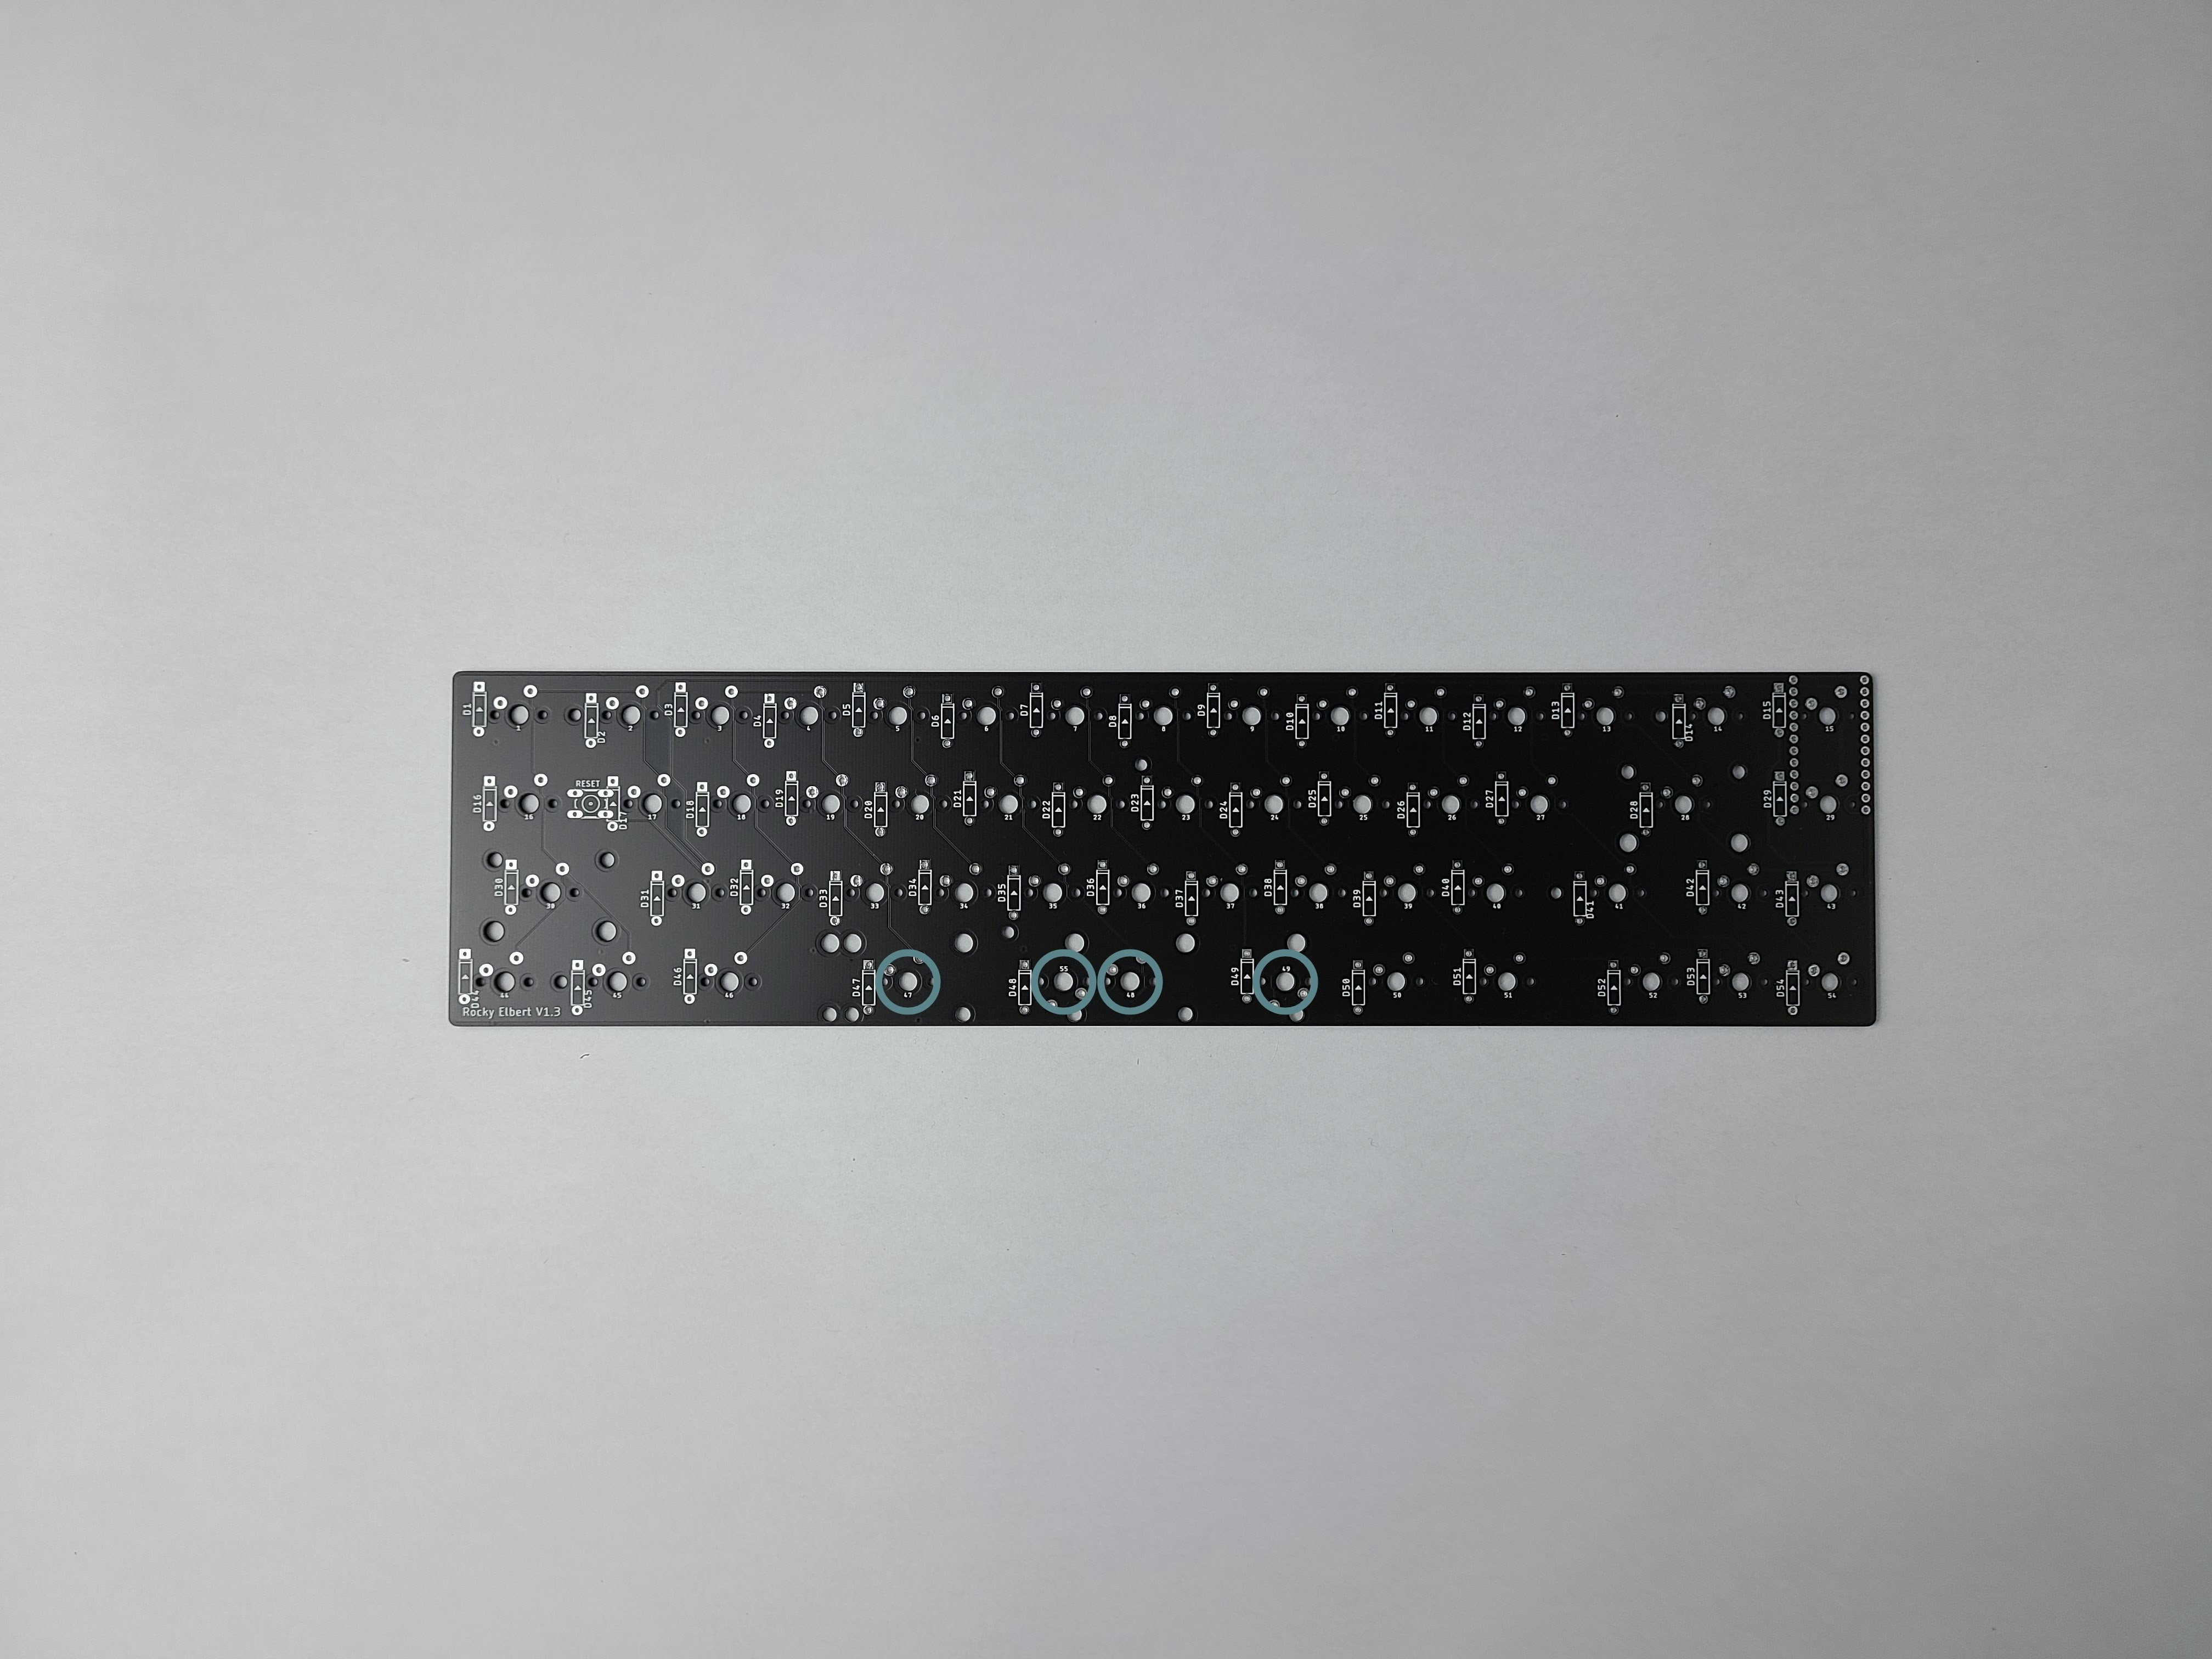 PCB with four spacebar switch footprints circled